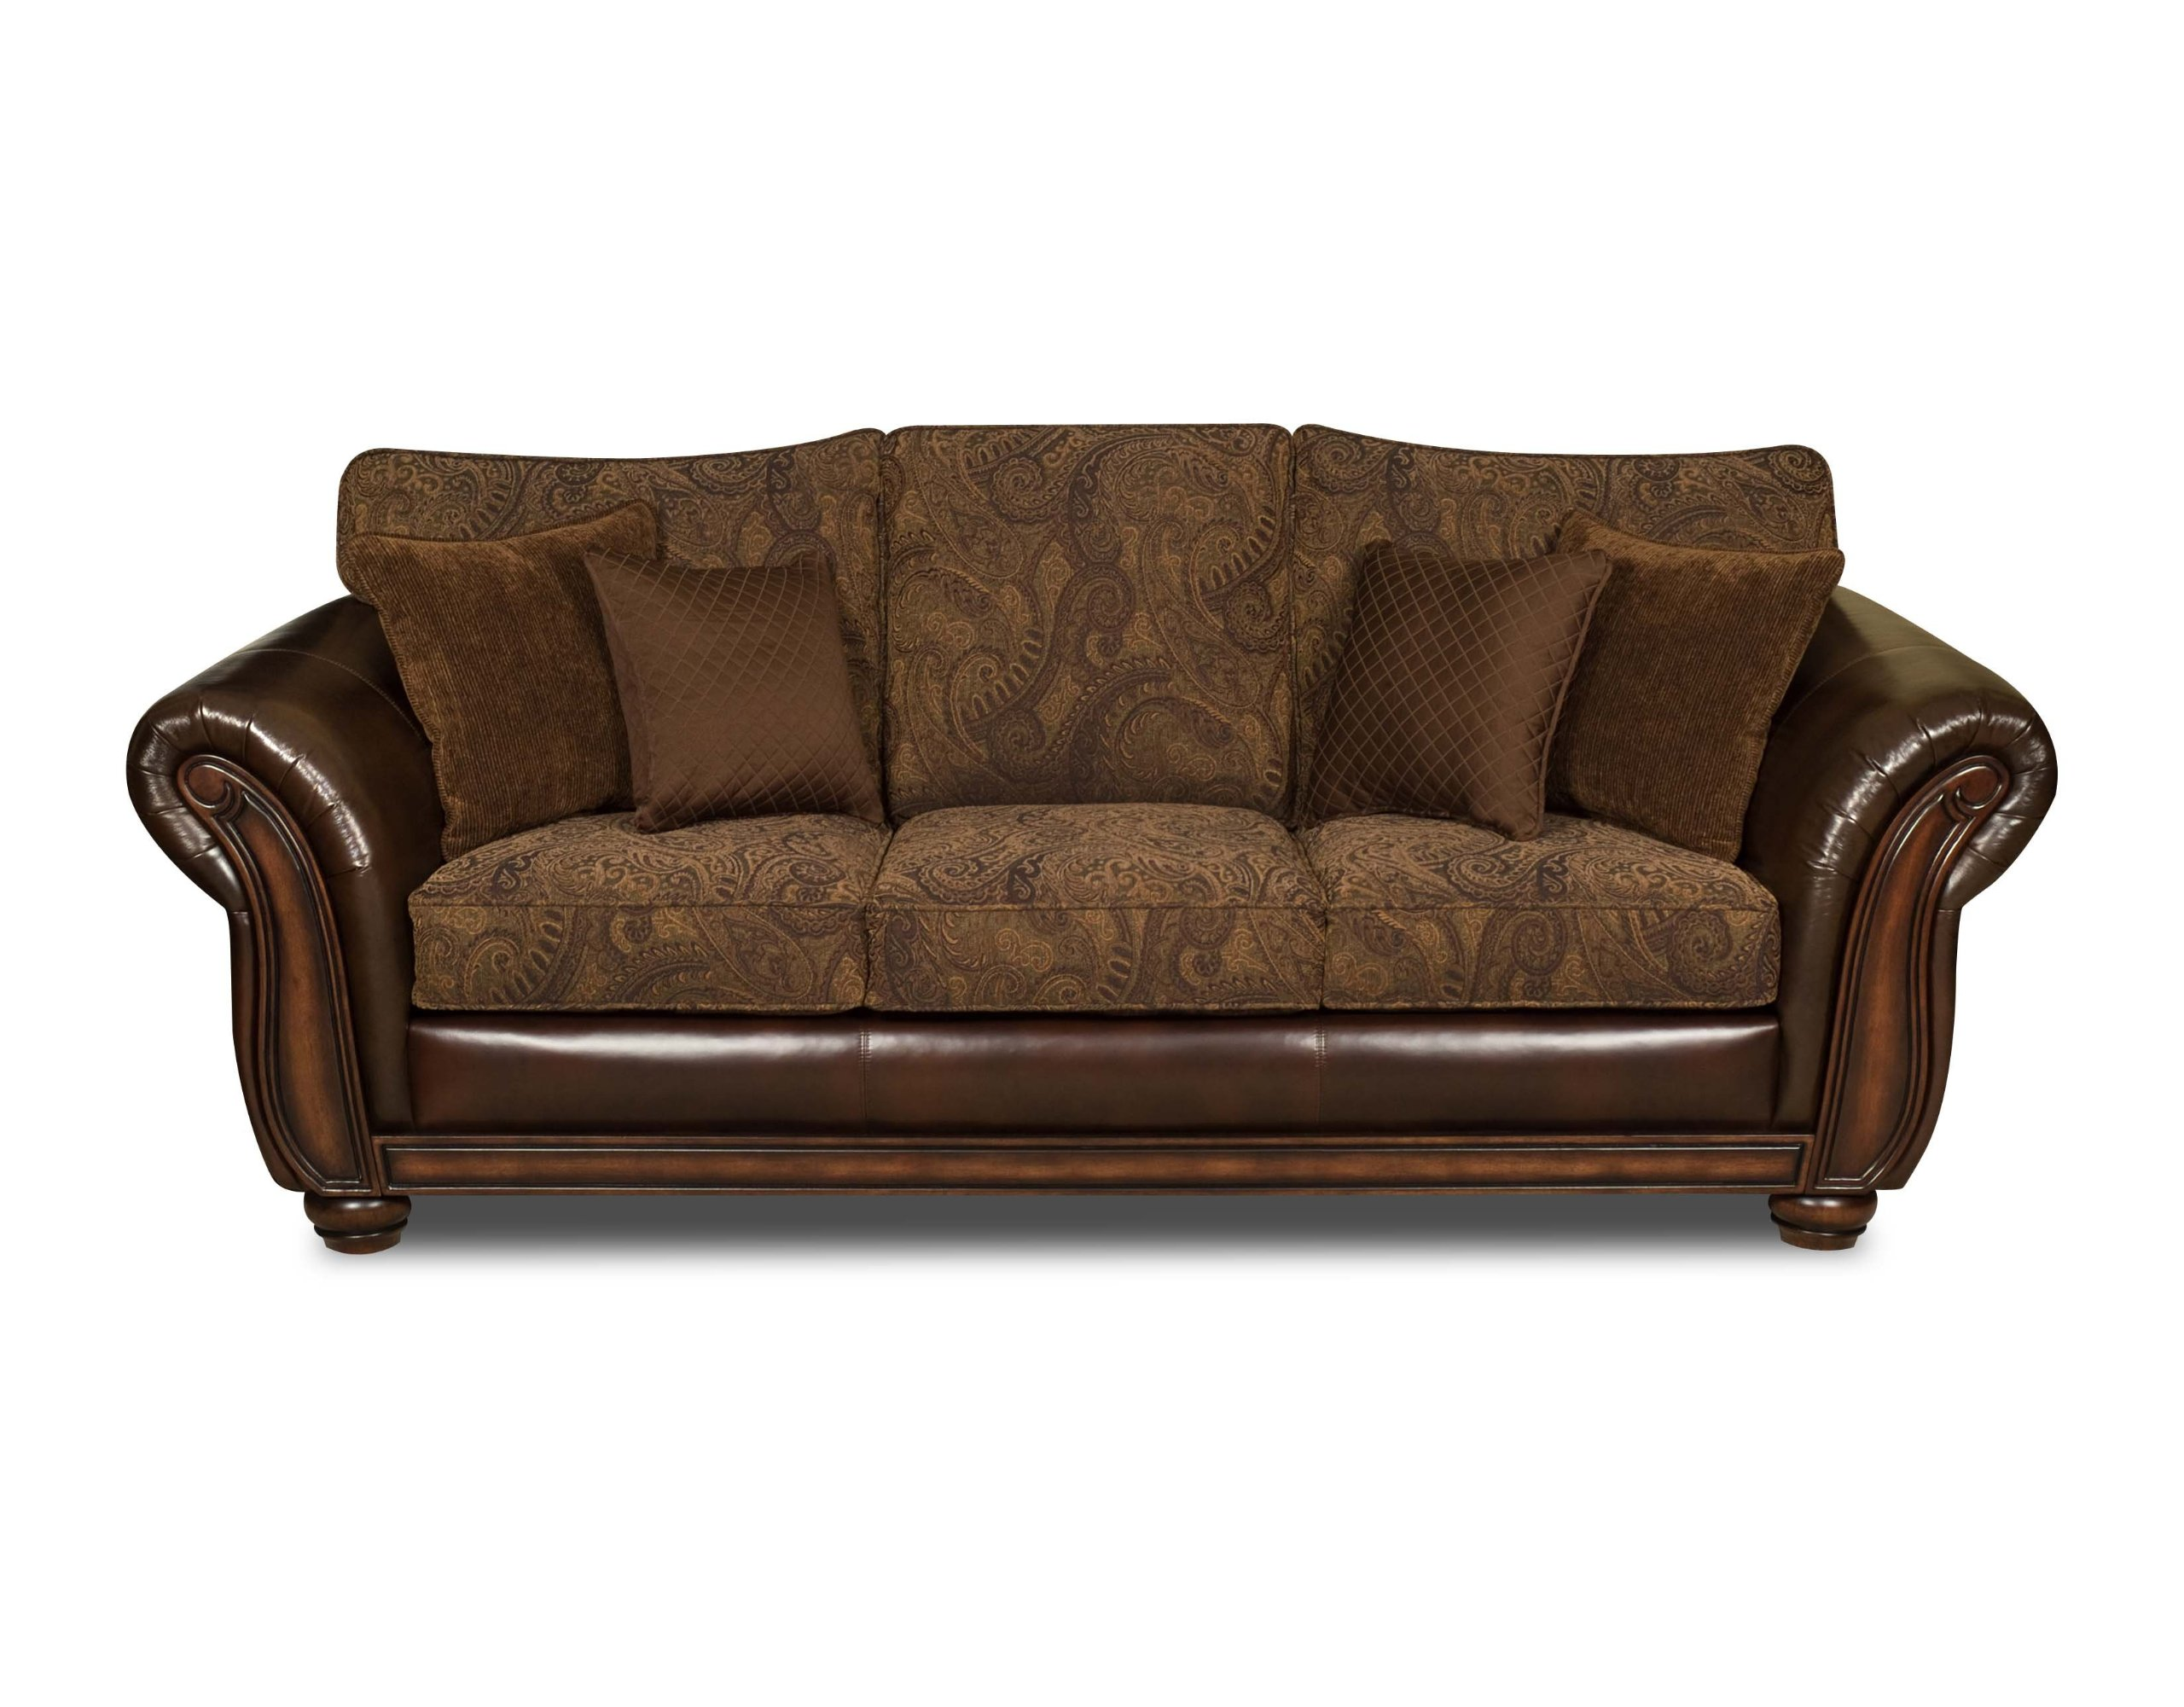 Simmons Vintage Leather Tobbaco Fabric Queen Size Sofa